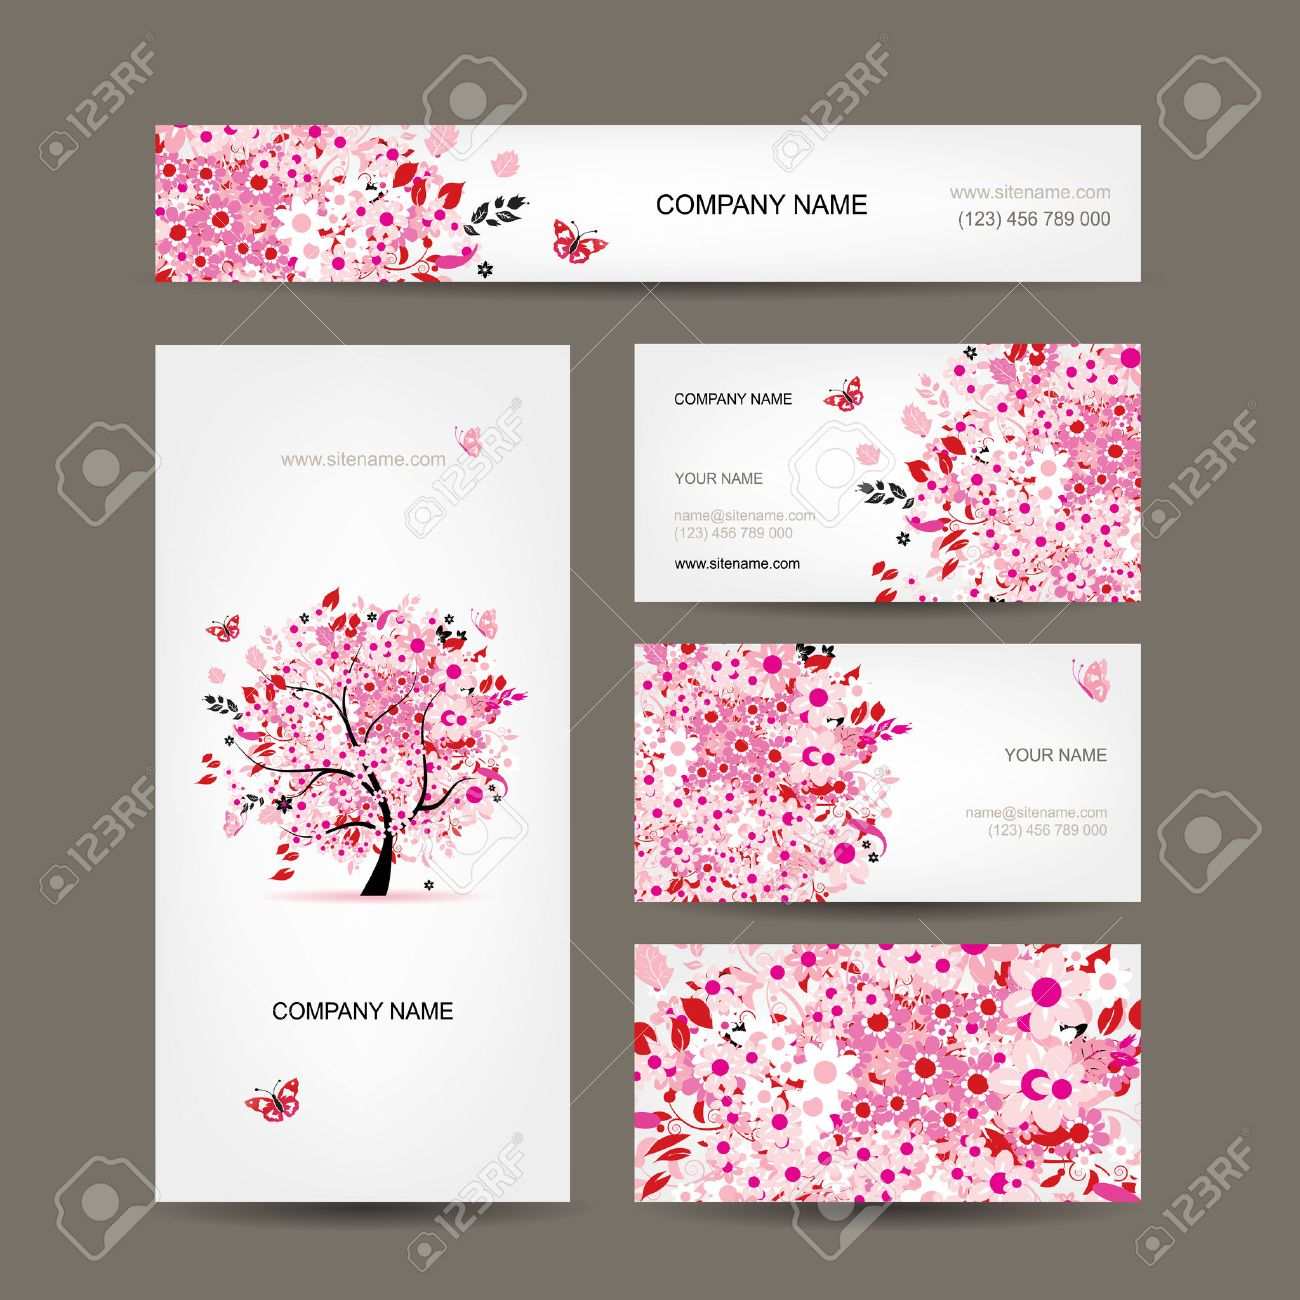 Famous Floral Design Business Cards Ideas - Business Card Ideas ...